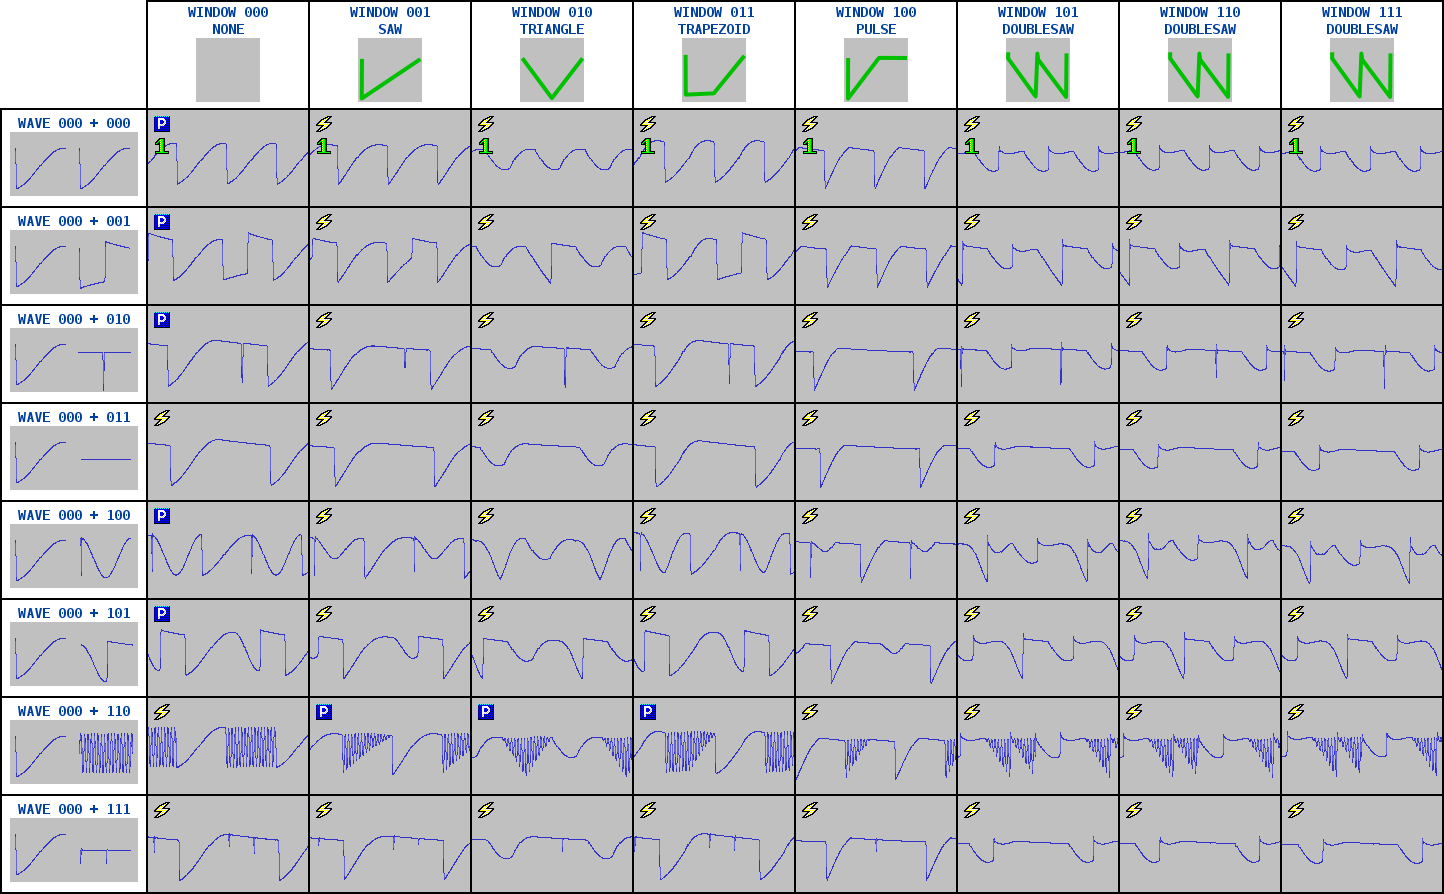 A table of WAVE 000, combined with every other WAVE, and passed through every WINDOW function